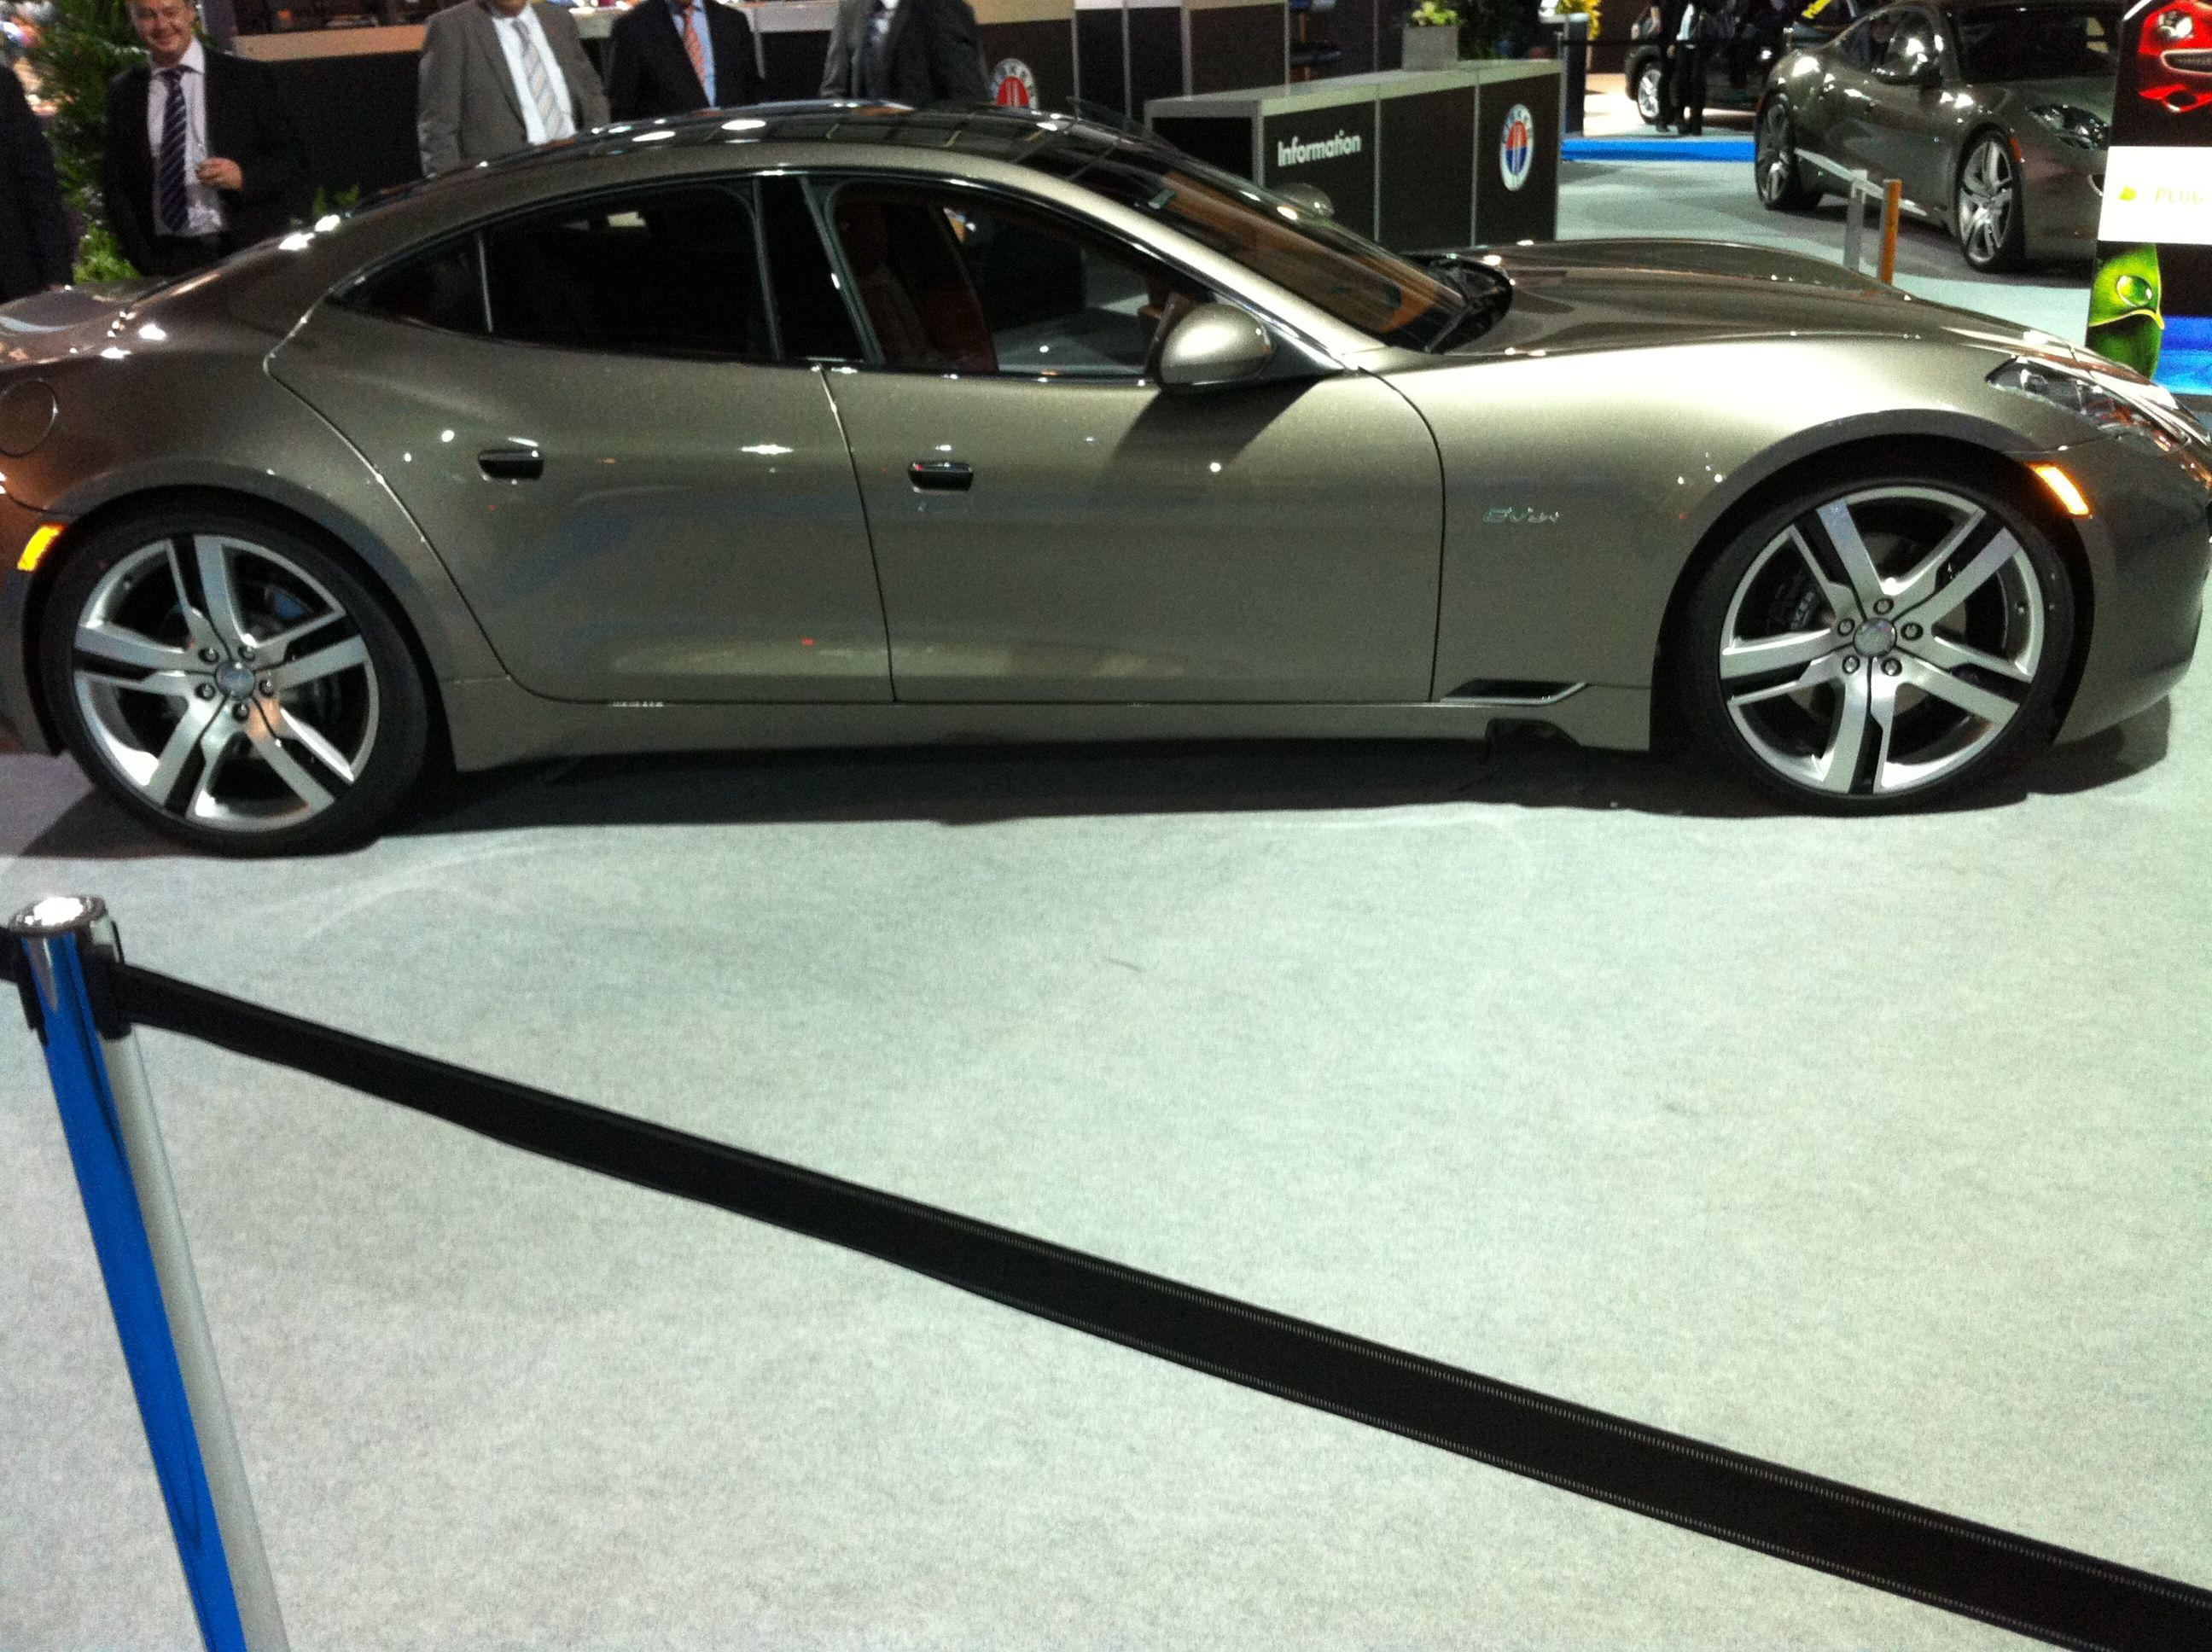 fisker karma mit elektroantrieb und solardach auto z rich 2011 cycle car co pinterest. Black Bedroom Furniture Sets. Home Design Ideas